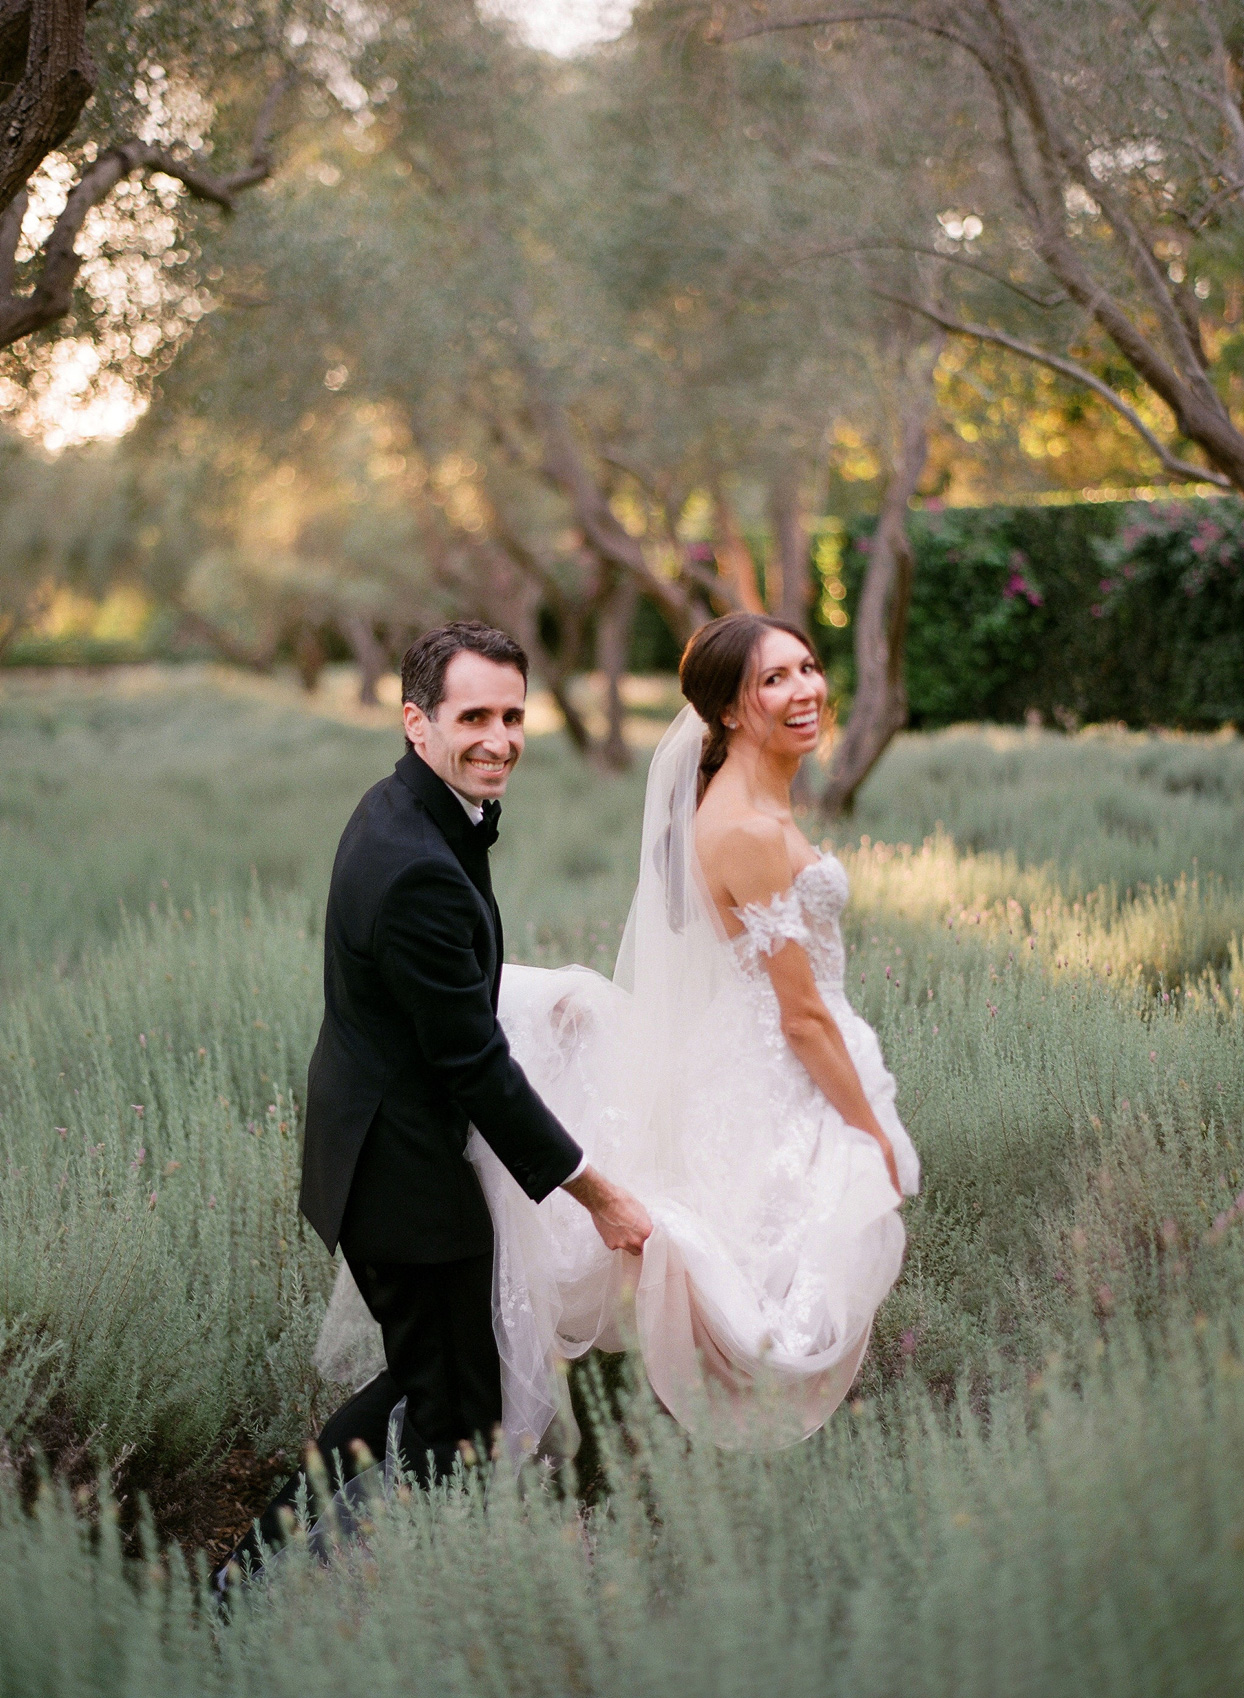 groom carrying brides train in field